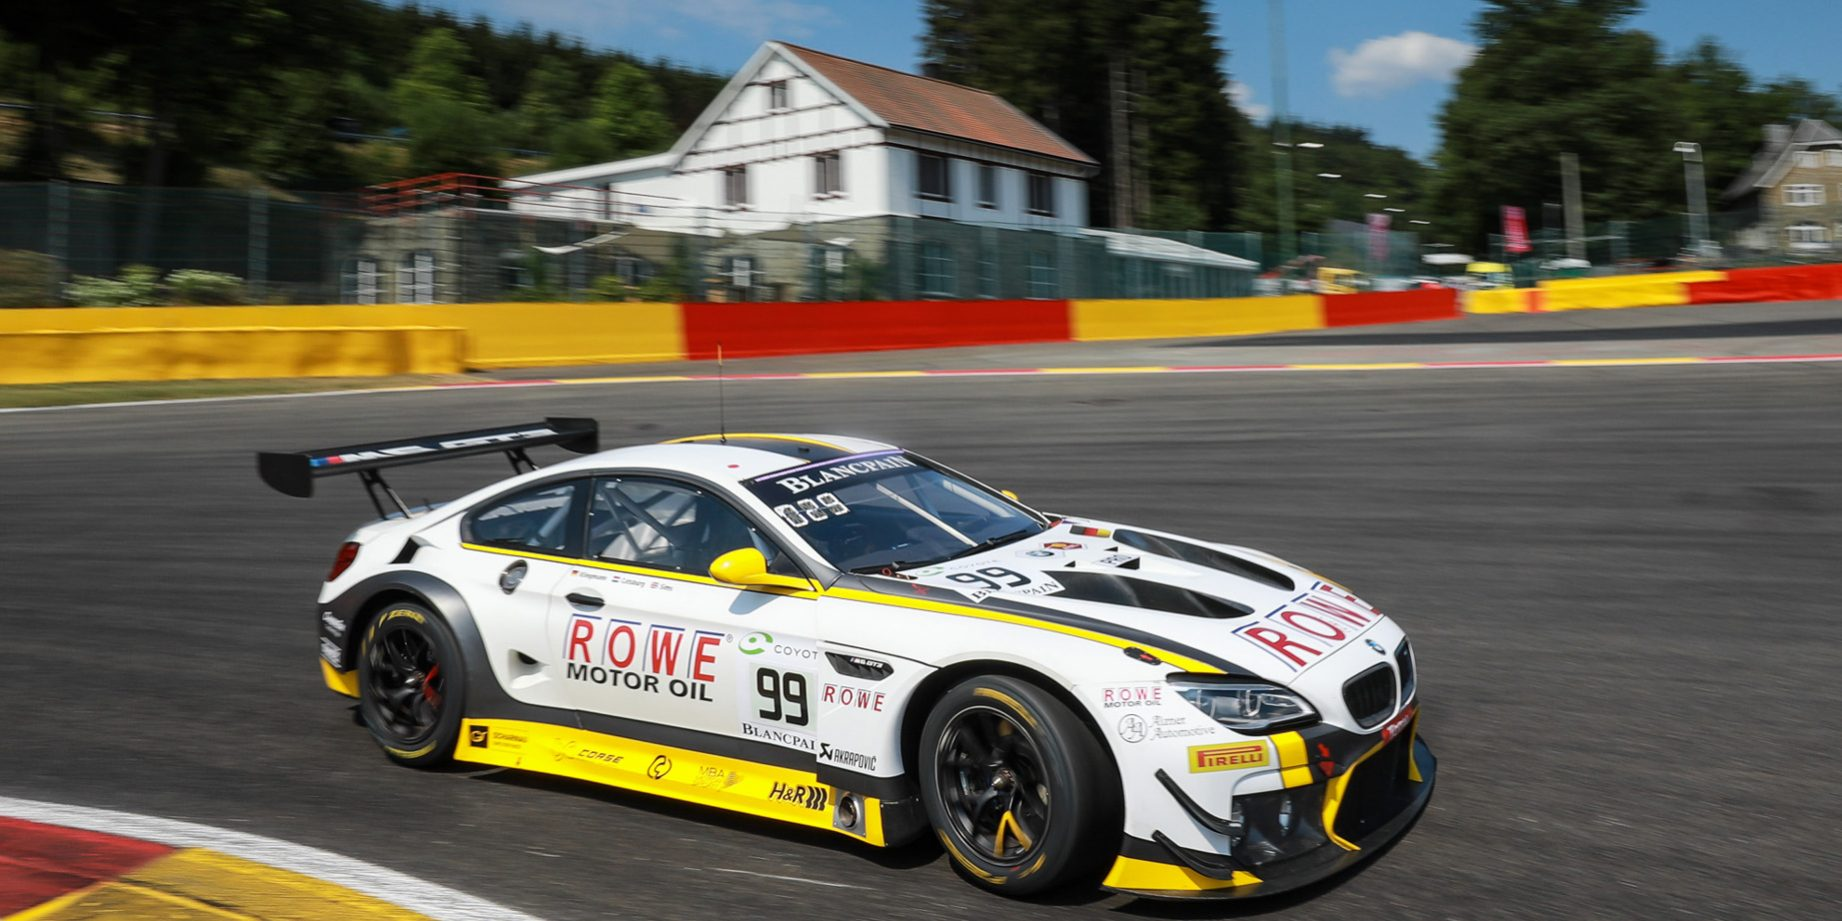 Rowe Racing To Start The 70th Edition Of The 24 Hours Of Spa From